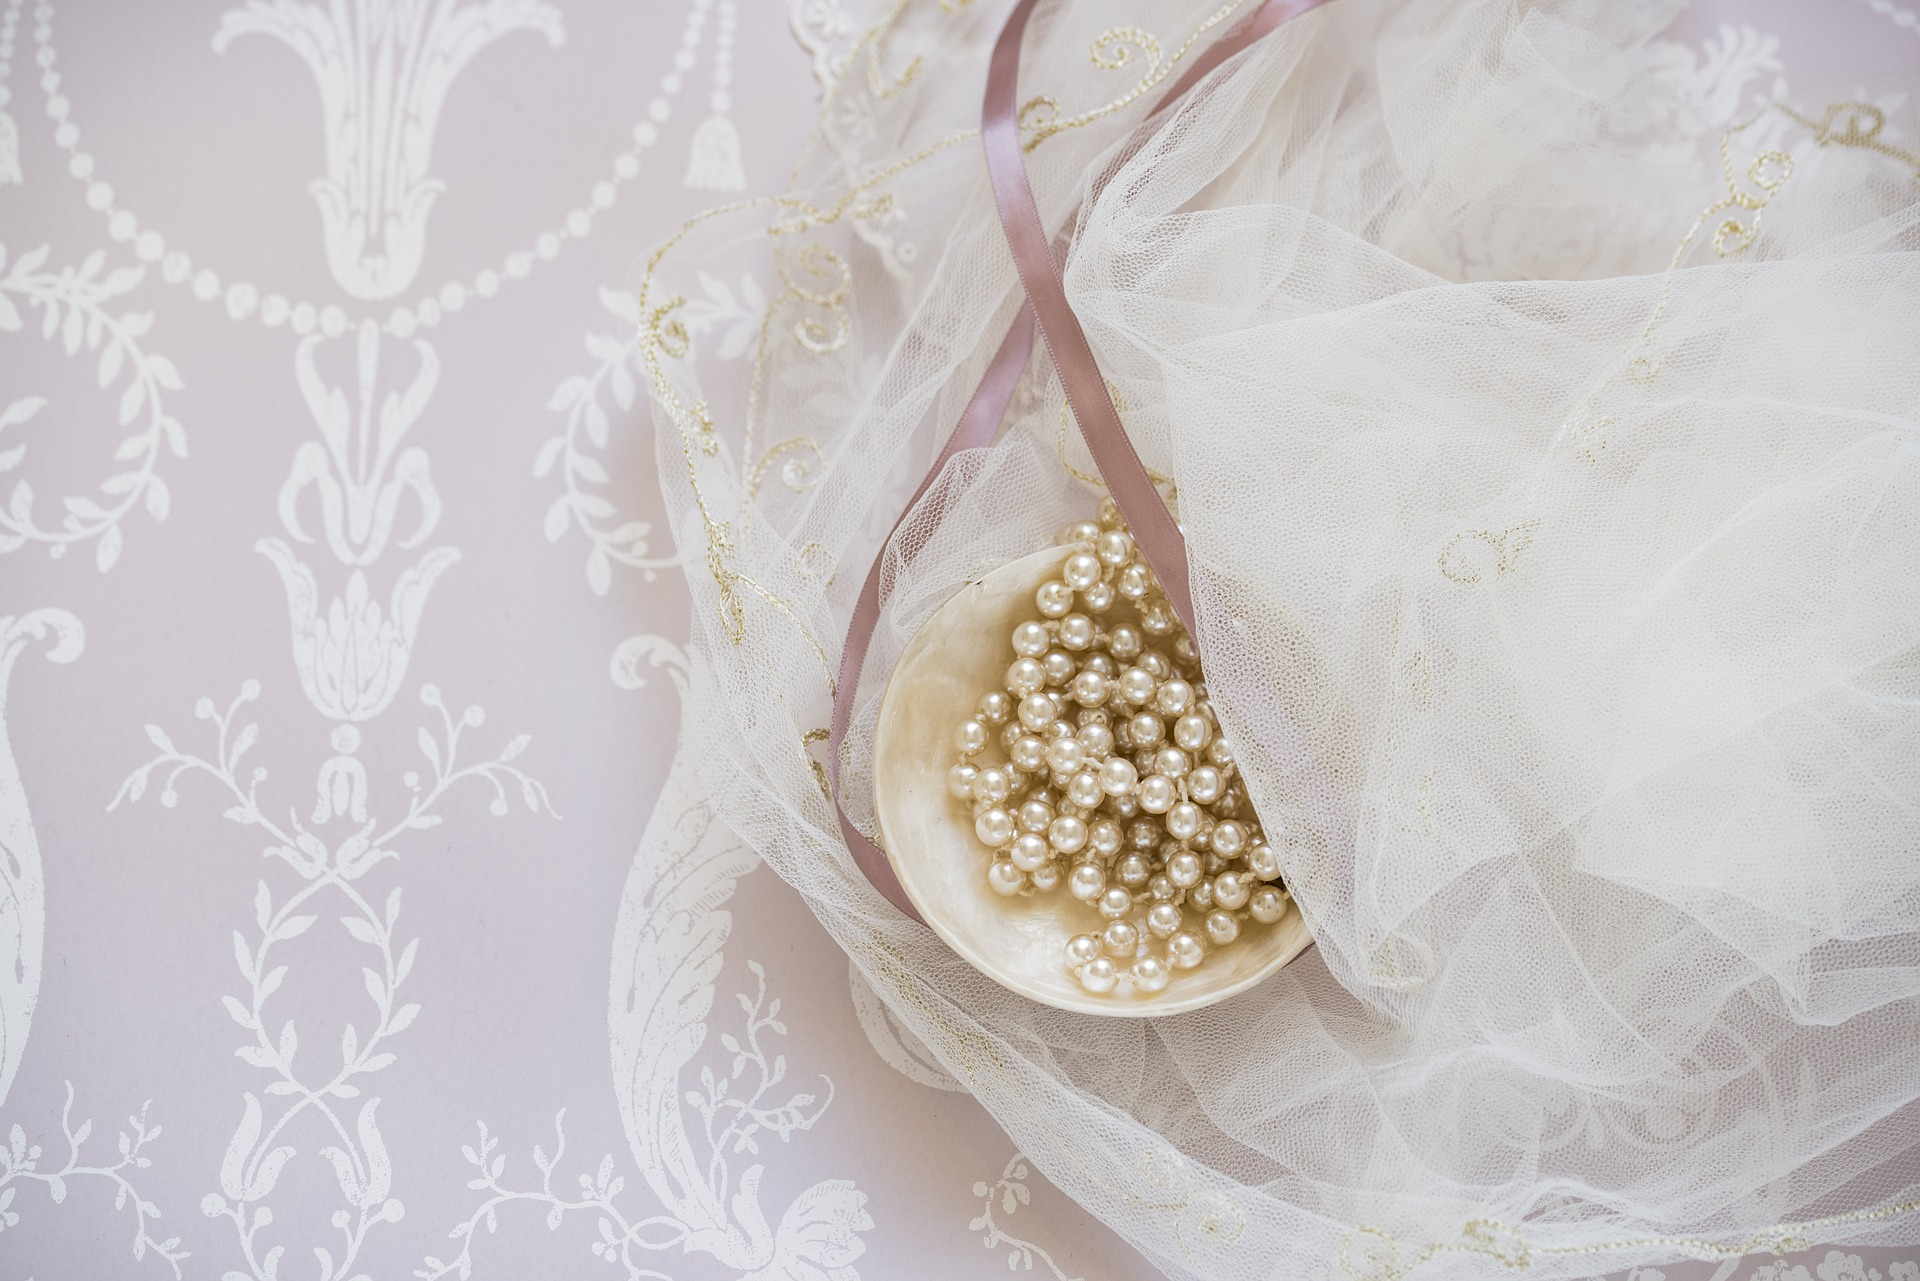 What makes a wedding memorable is the multitude of images: A stunning white dress for the bride, sophisticated gold chains for the groom, and maybe a breathtaking décor with coordinated colors and personal touches. In short, think of your wedding as if you were preparing a fashion show.